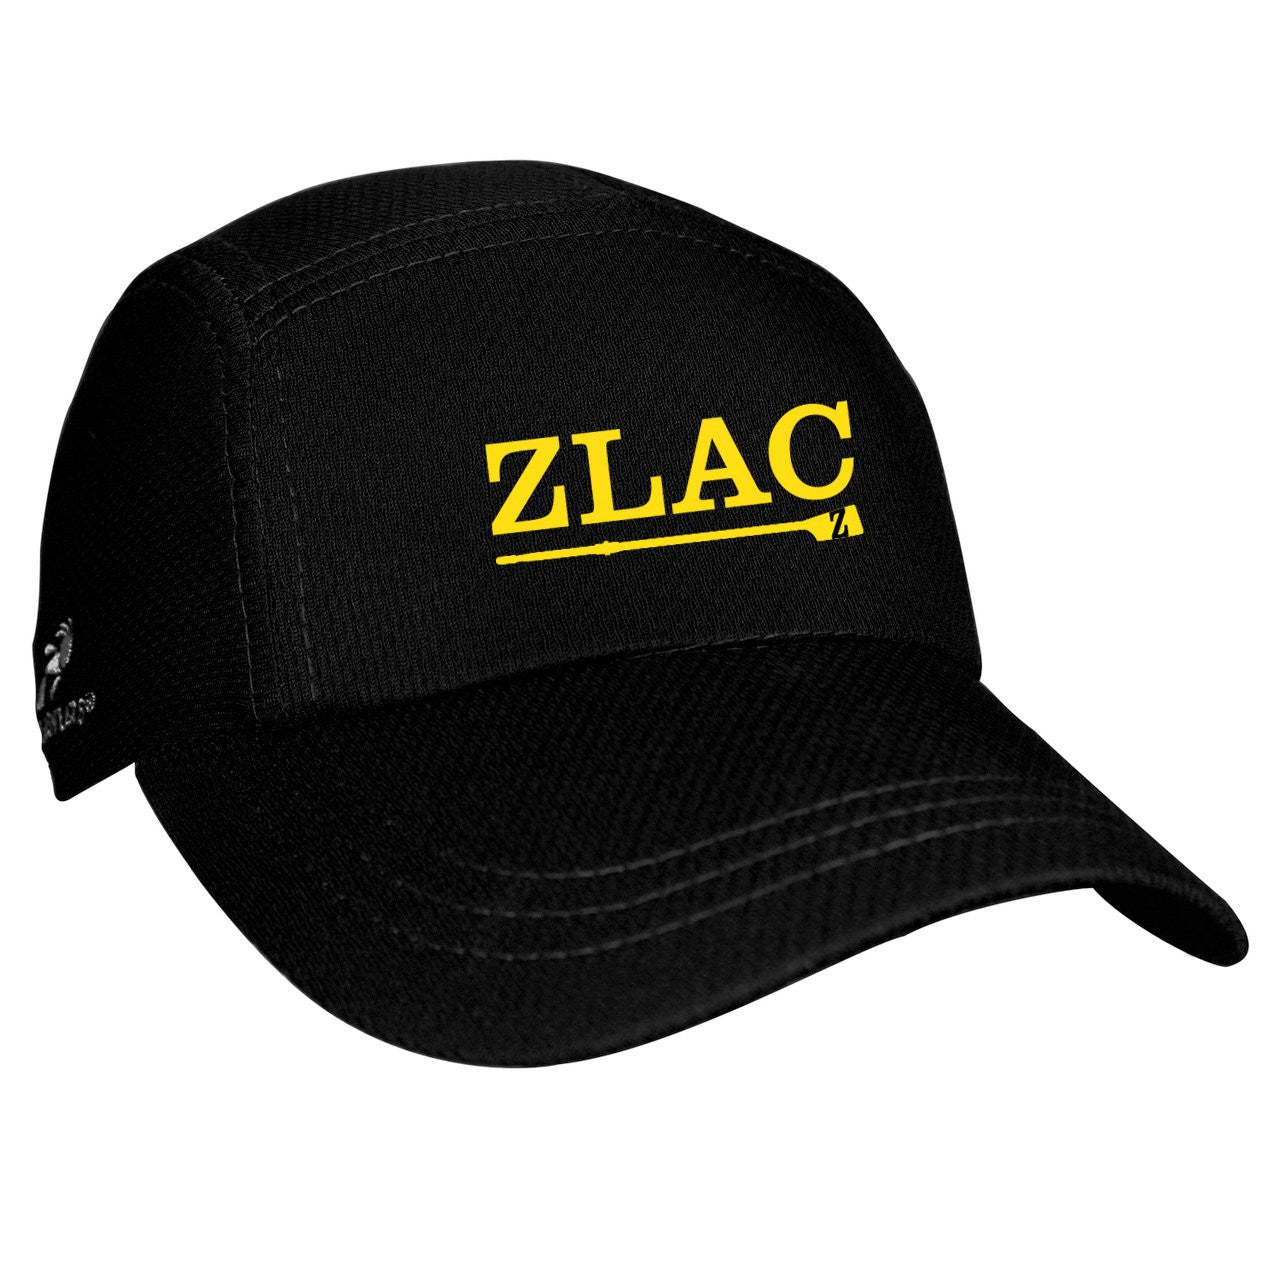 ZLAC Team Competition Performance Hat